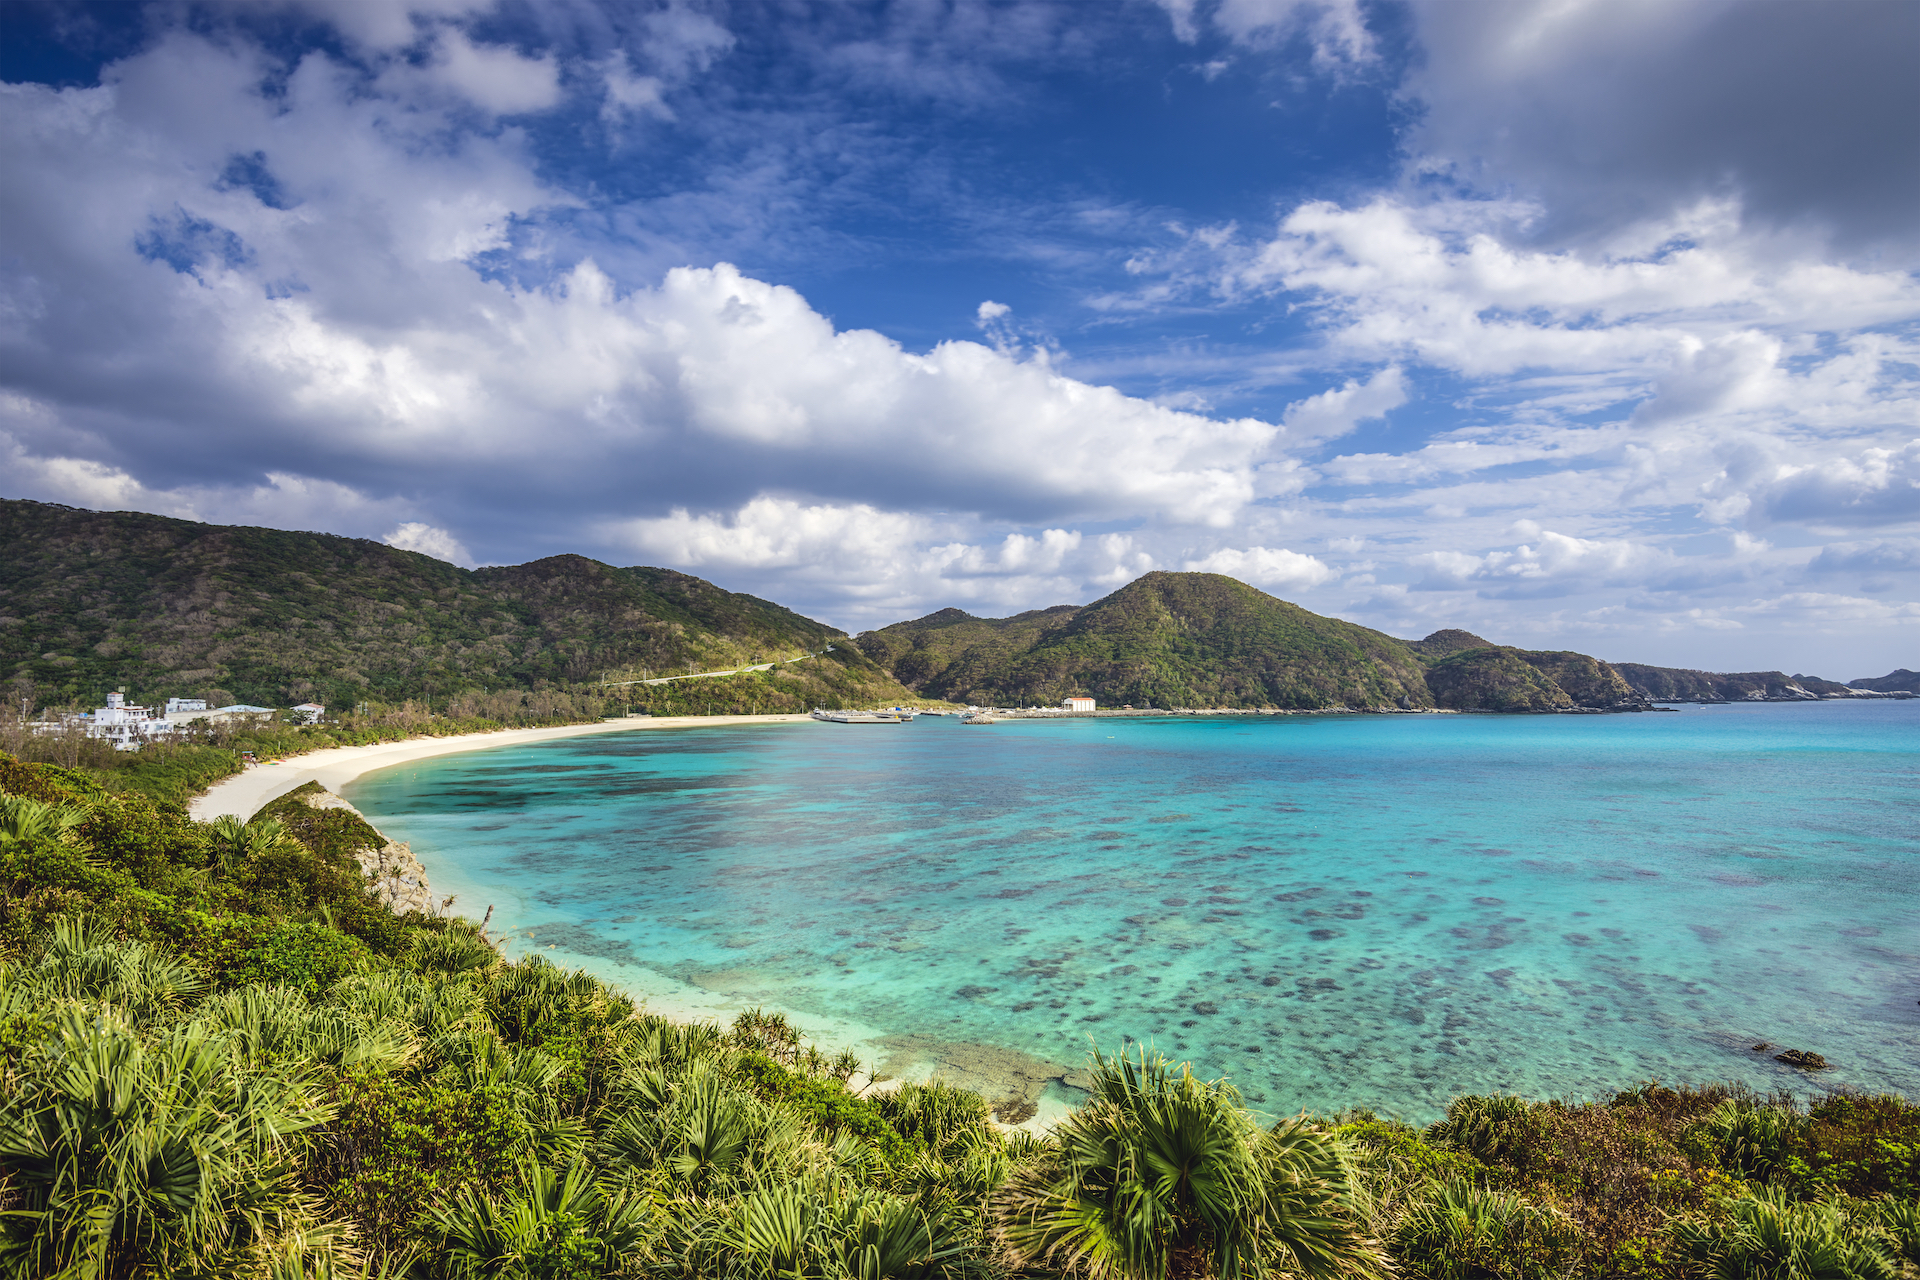 The best Okinawa islands you should visit